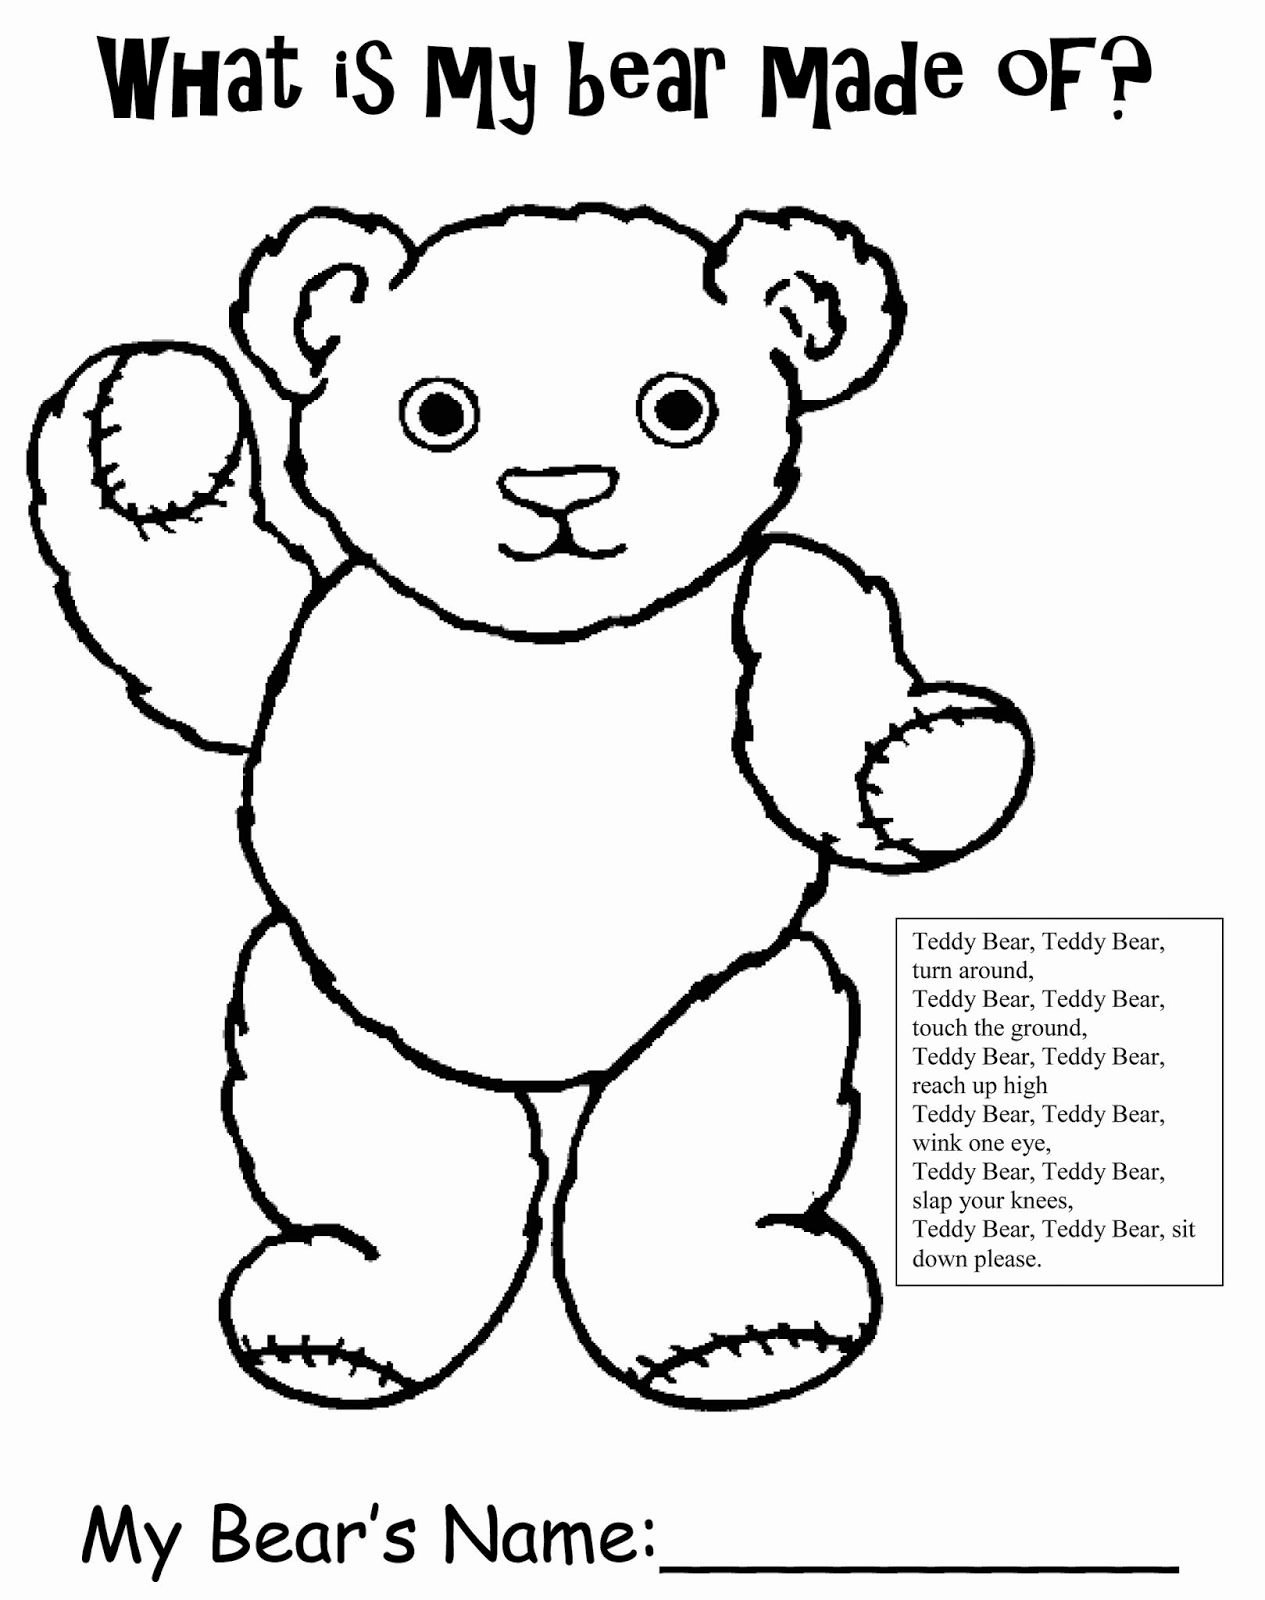 Teddy Bear Worksheets for Preschoolers Kids Bear Printable Homework Sheets for Preschool Teddy Bear Free